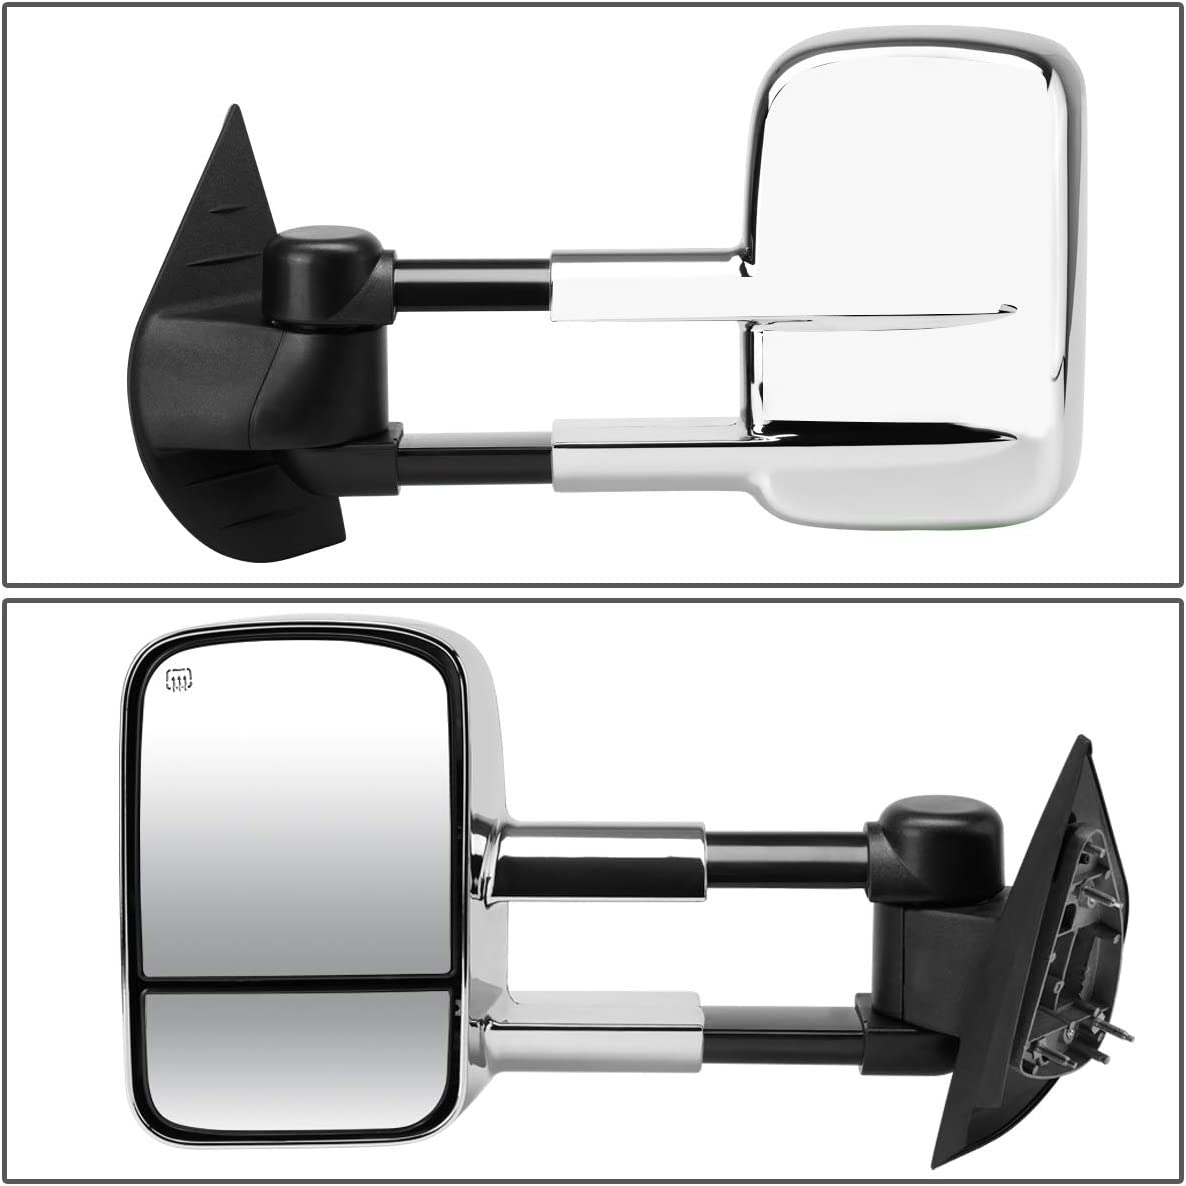 Driver and Passenger Sides DNA motoring TWM-020-T111-BK Pair of Towing Side Mirrors